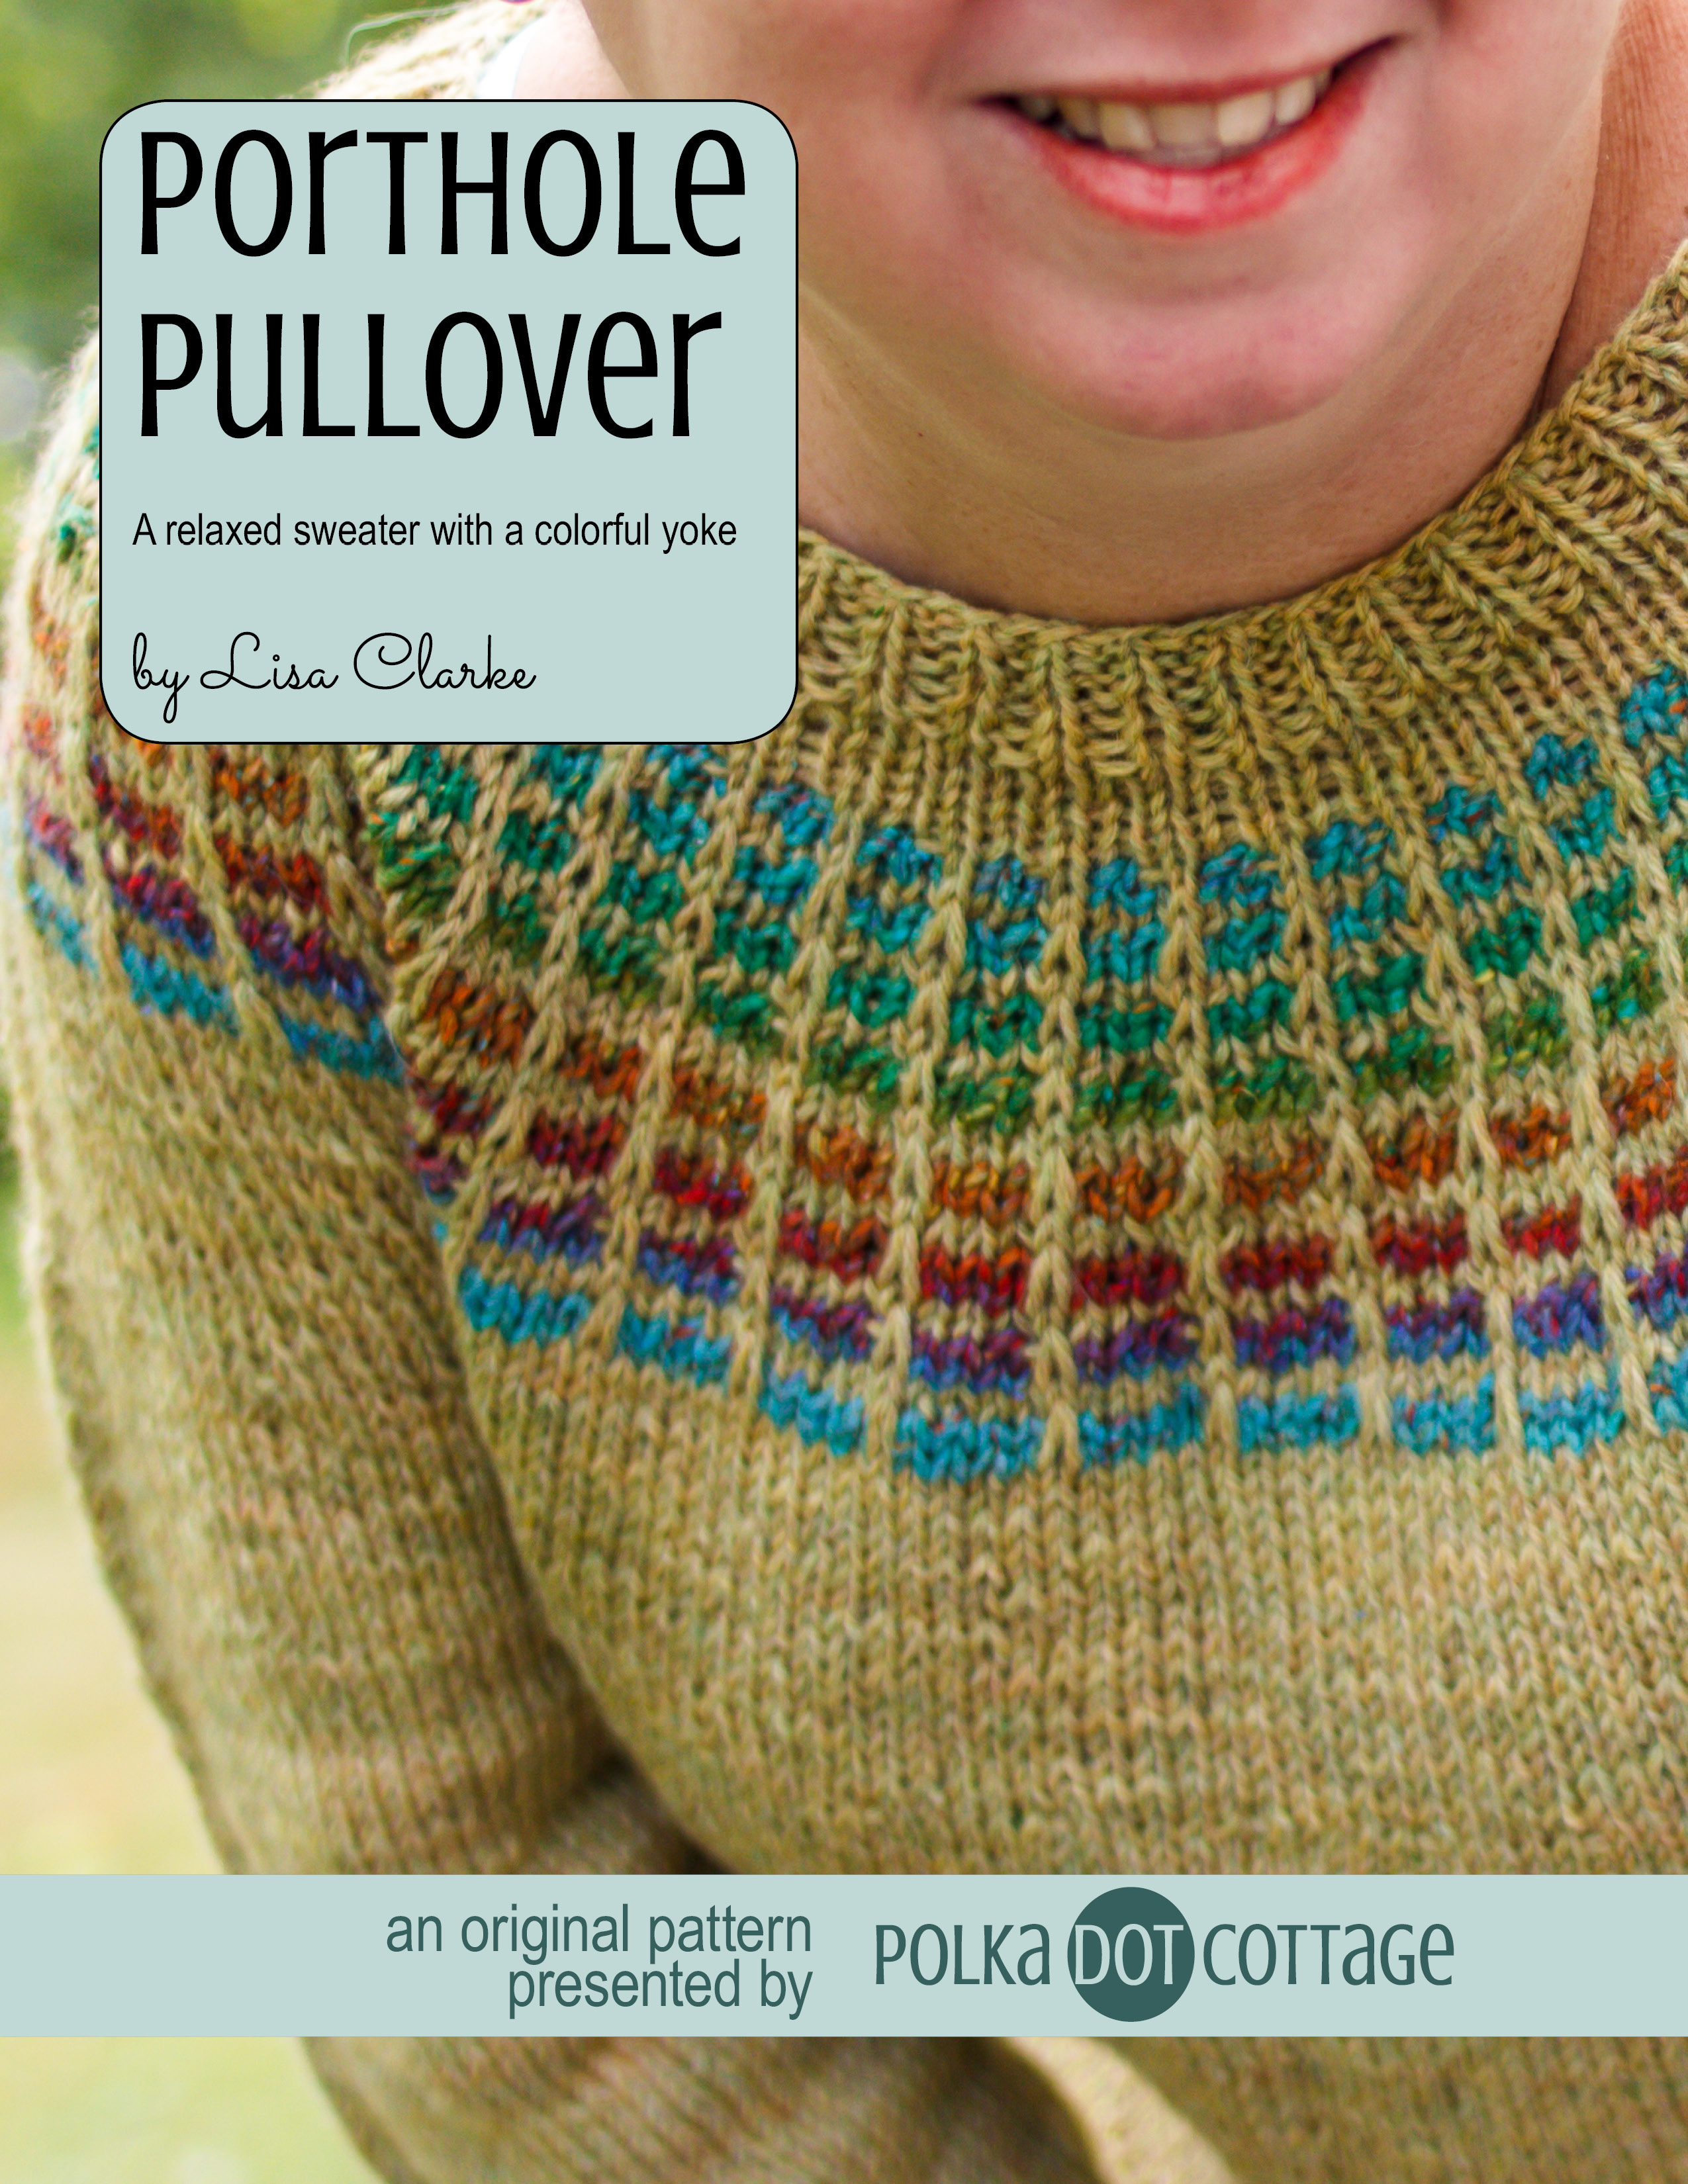 Porthole Pullover knitting pattern by Lisa Clarke